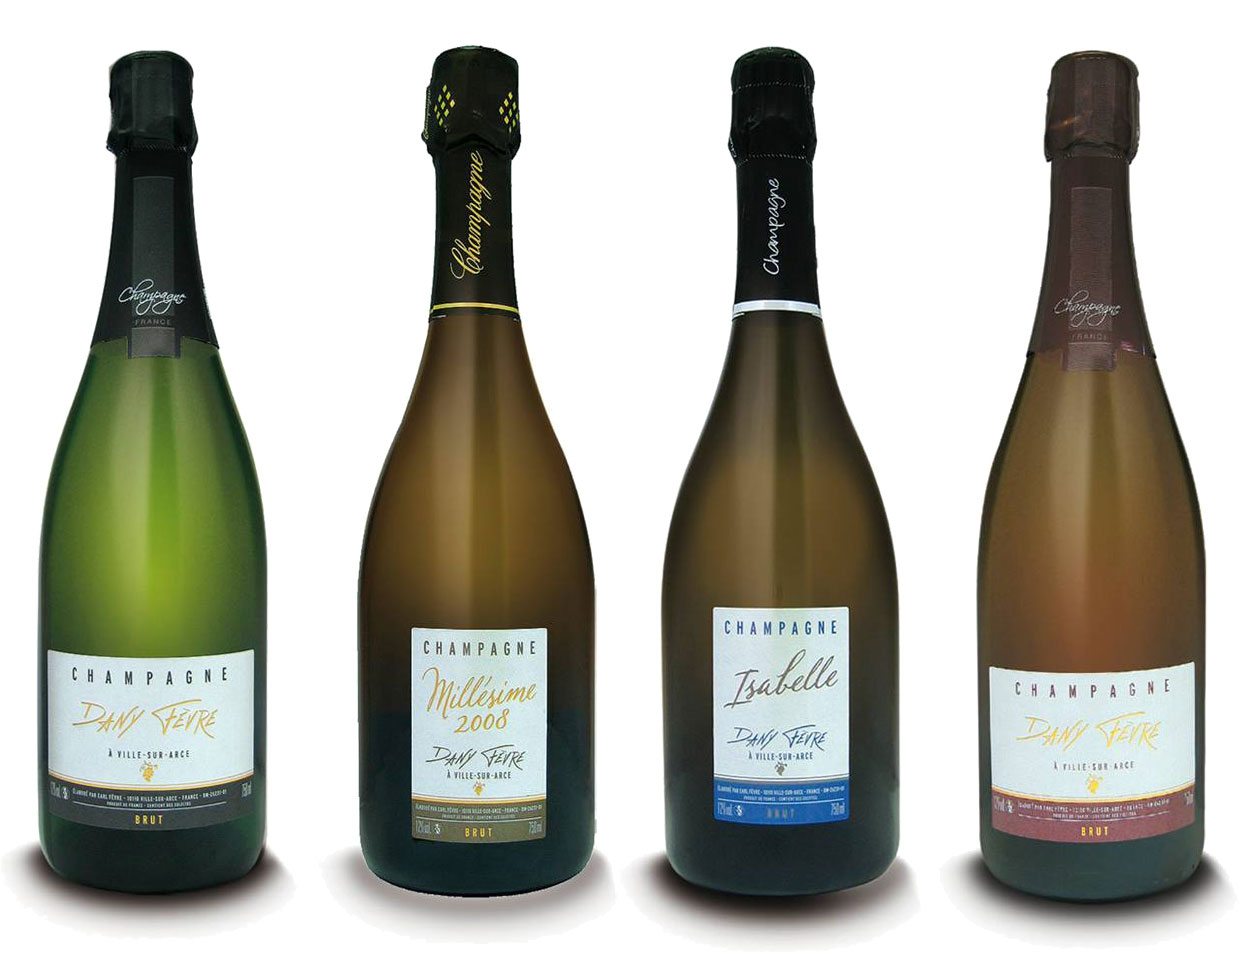 Champagne Dany Fèvre